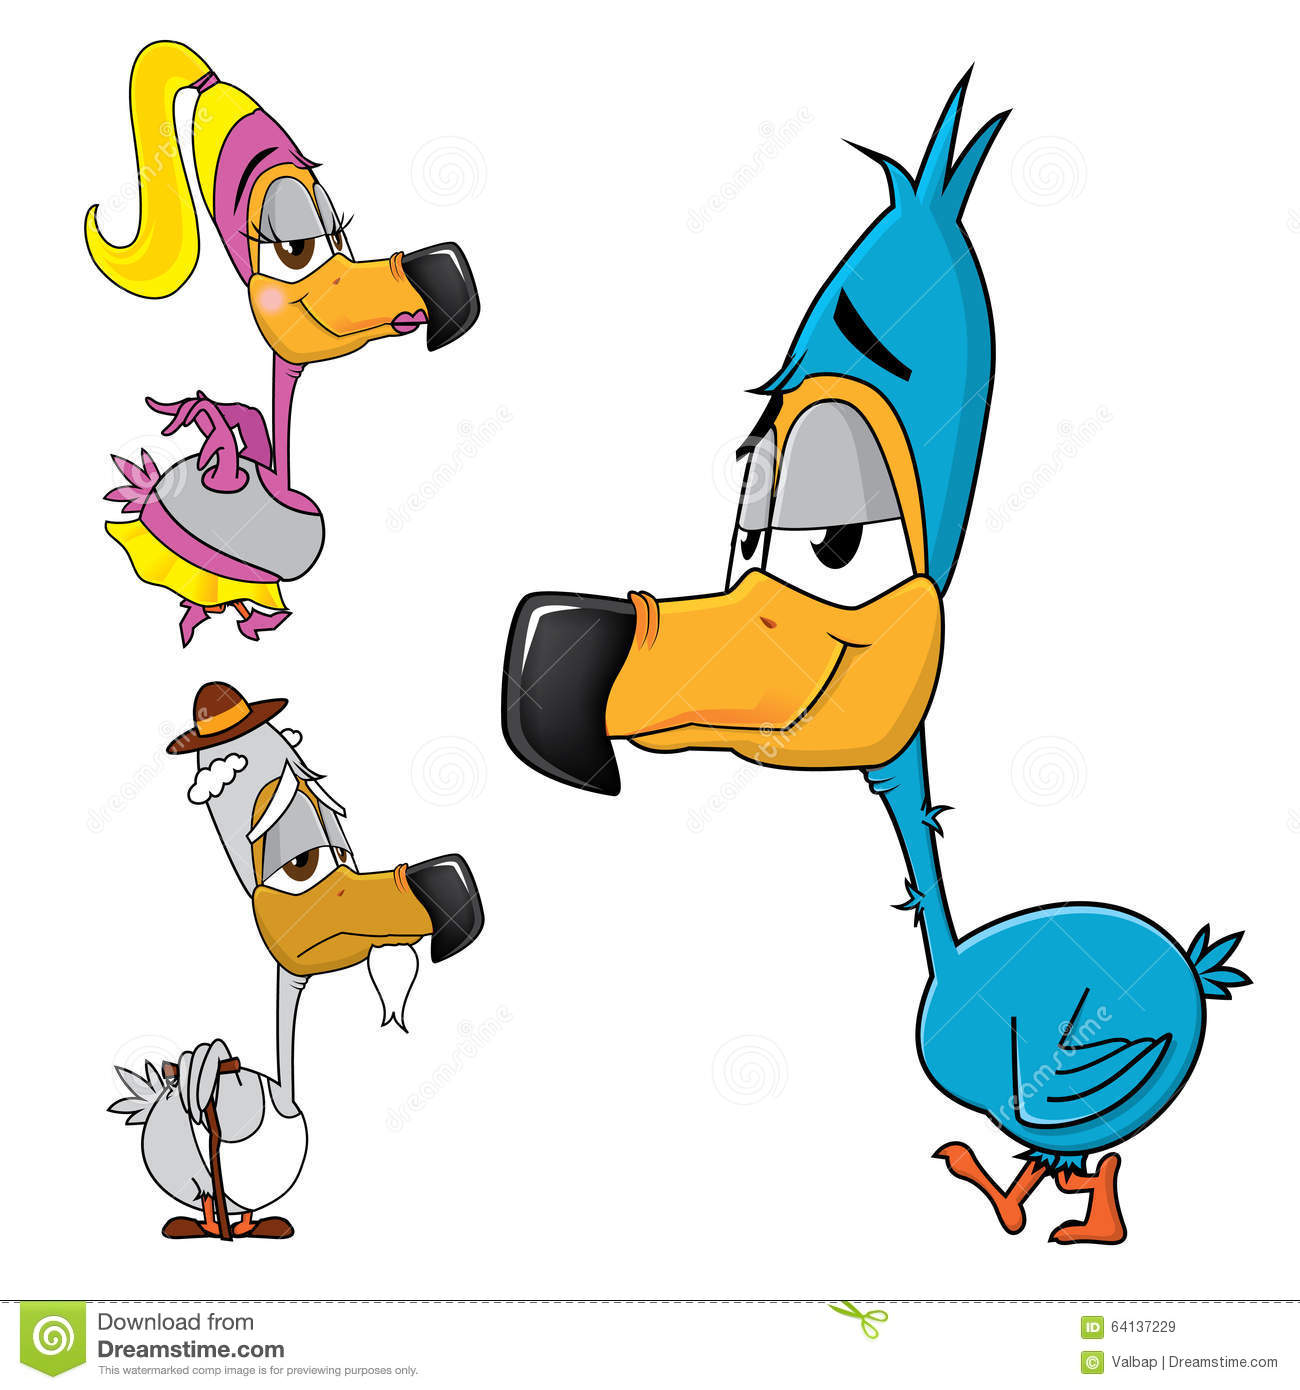 Dodo Family, Cartoon Of A Birds Family With A Tender And Gentle.